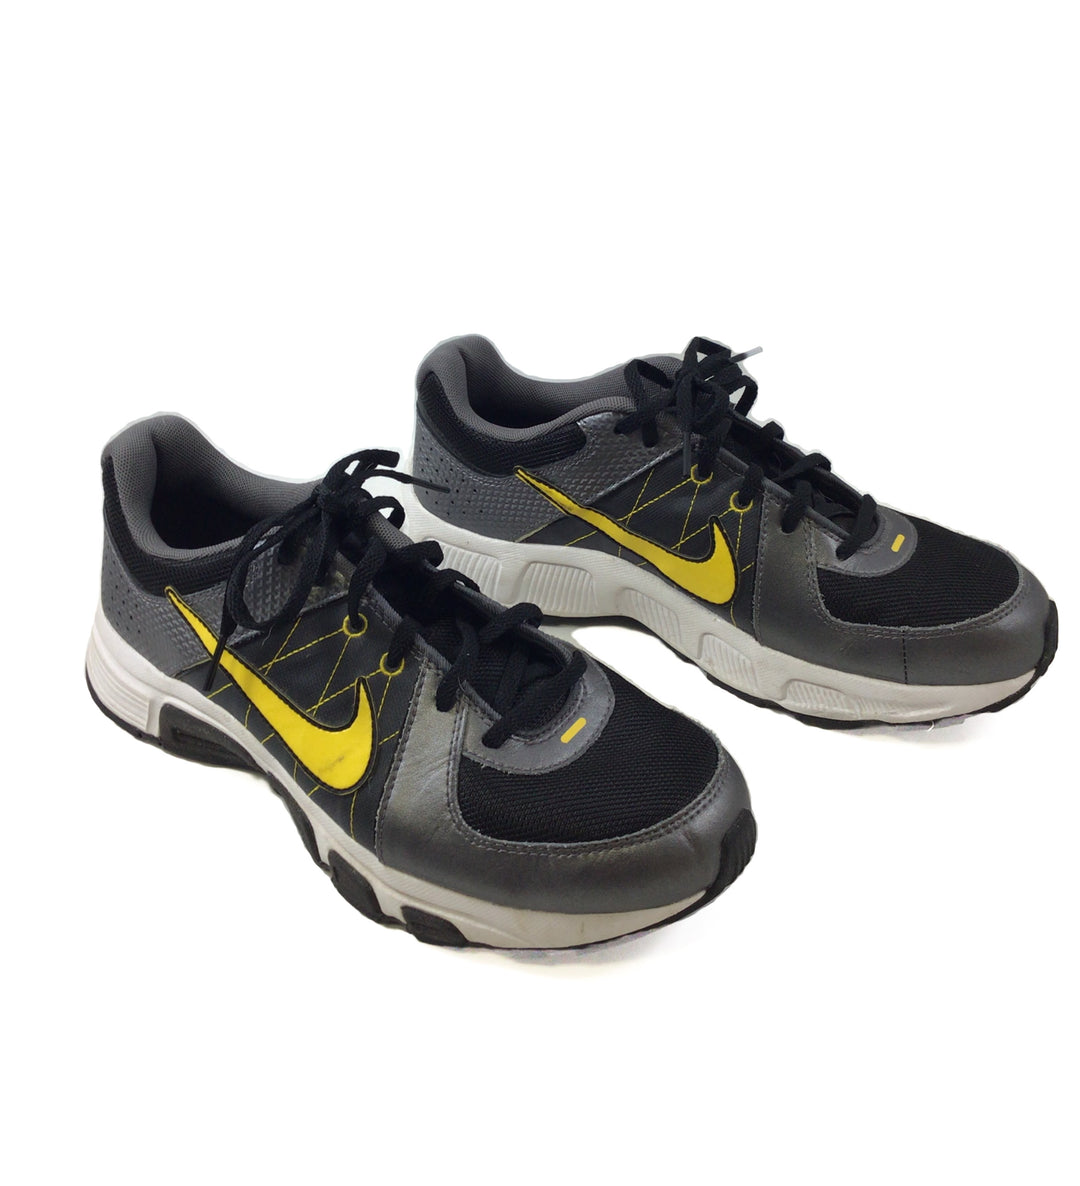 Primary Photo - BRAND: NIKE <BR>STYLE: SHOES ATHLETIC <BR>COLOR: GREY <BR>SIZE: 7 <BR>SKU: 213-213154-345